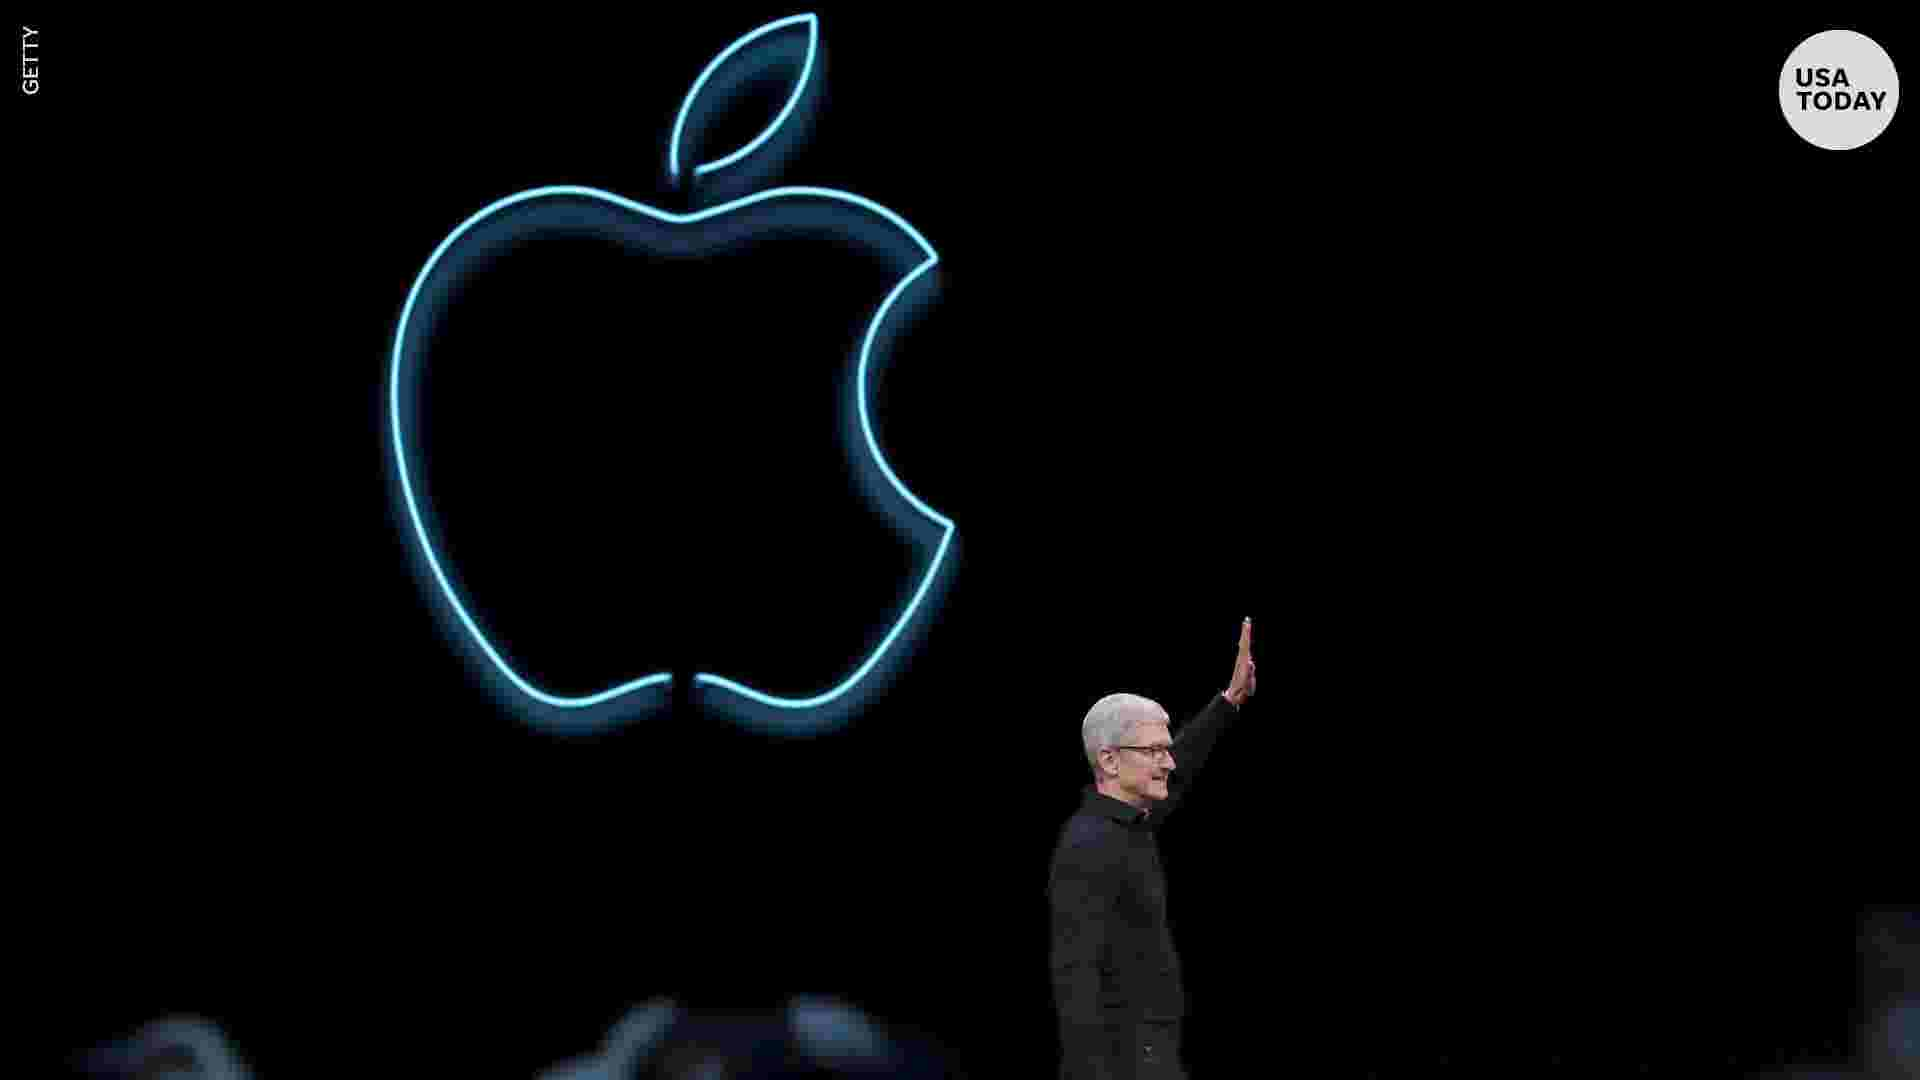 Apple's now worth $2 trillion. Here's what else you could get for that money.